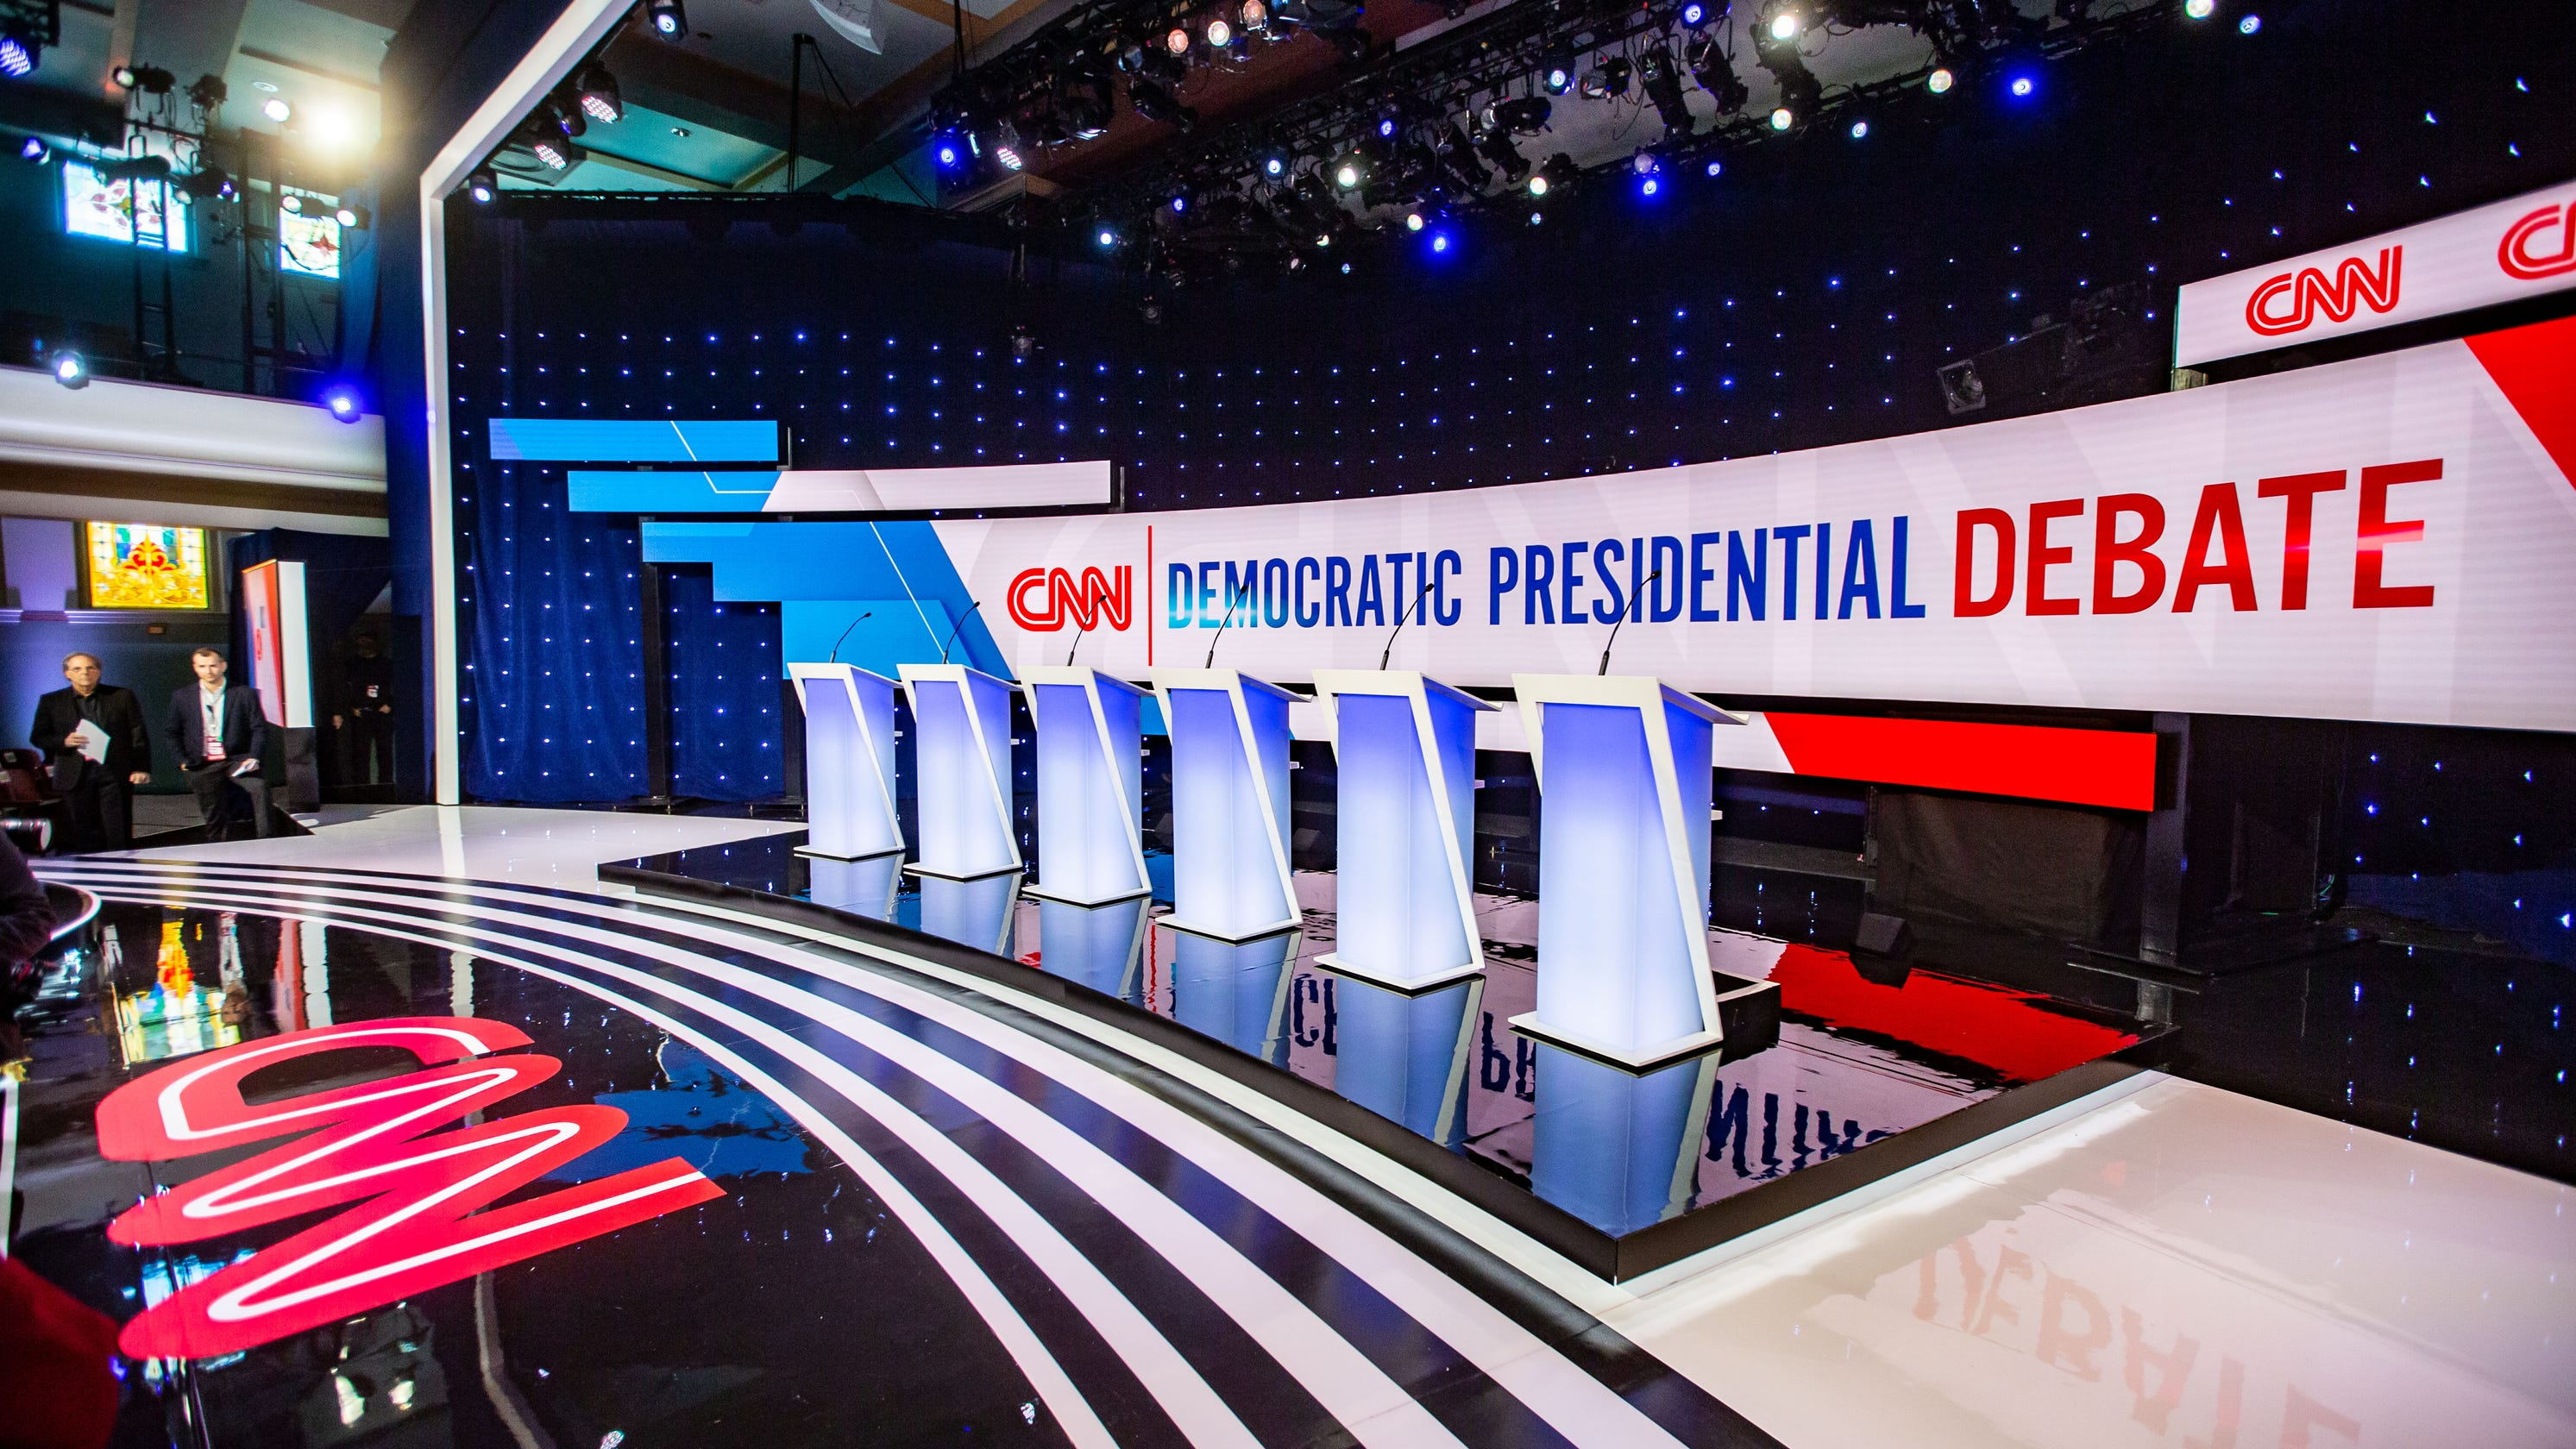 Democratic presidential candidates take the stage in Iowa debate thumbnail